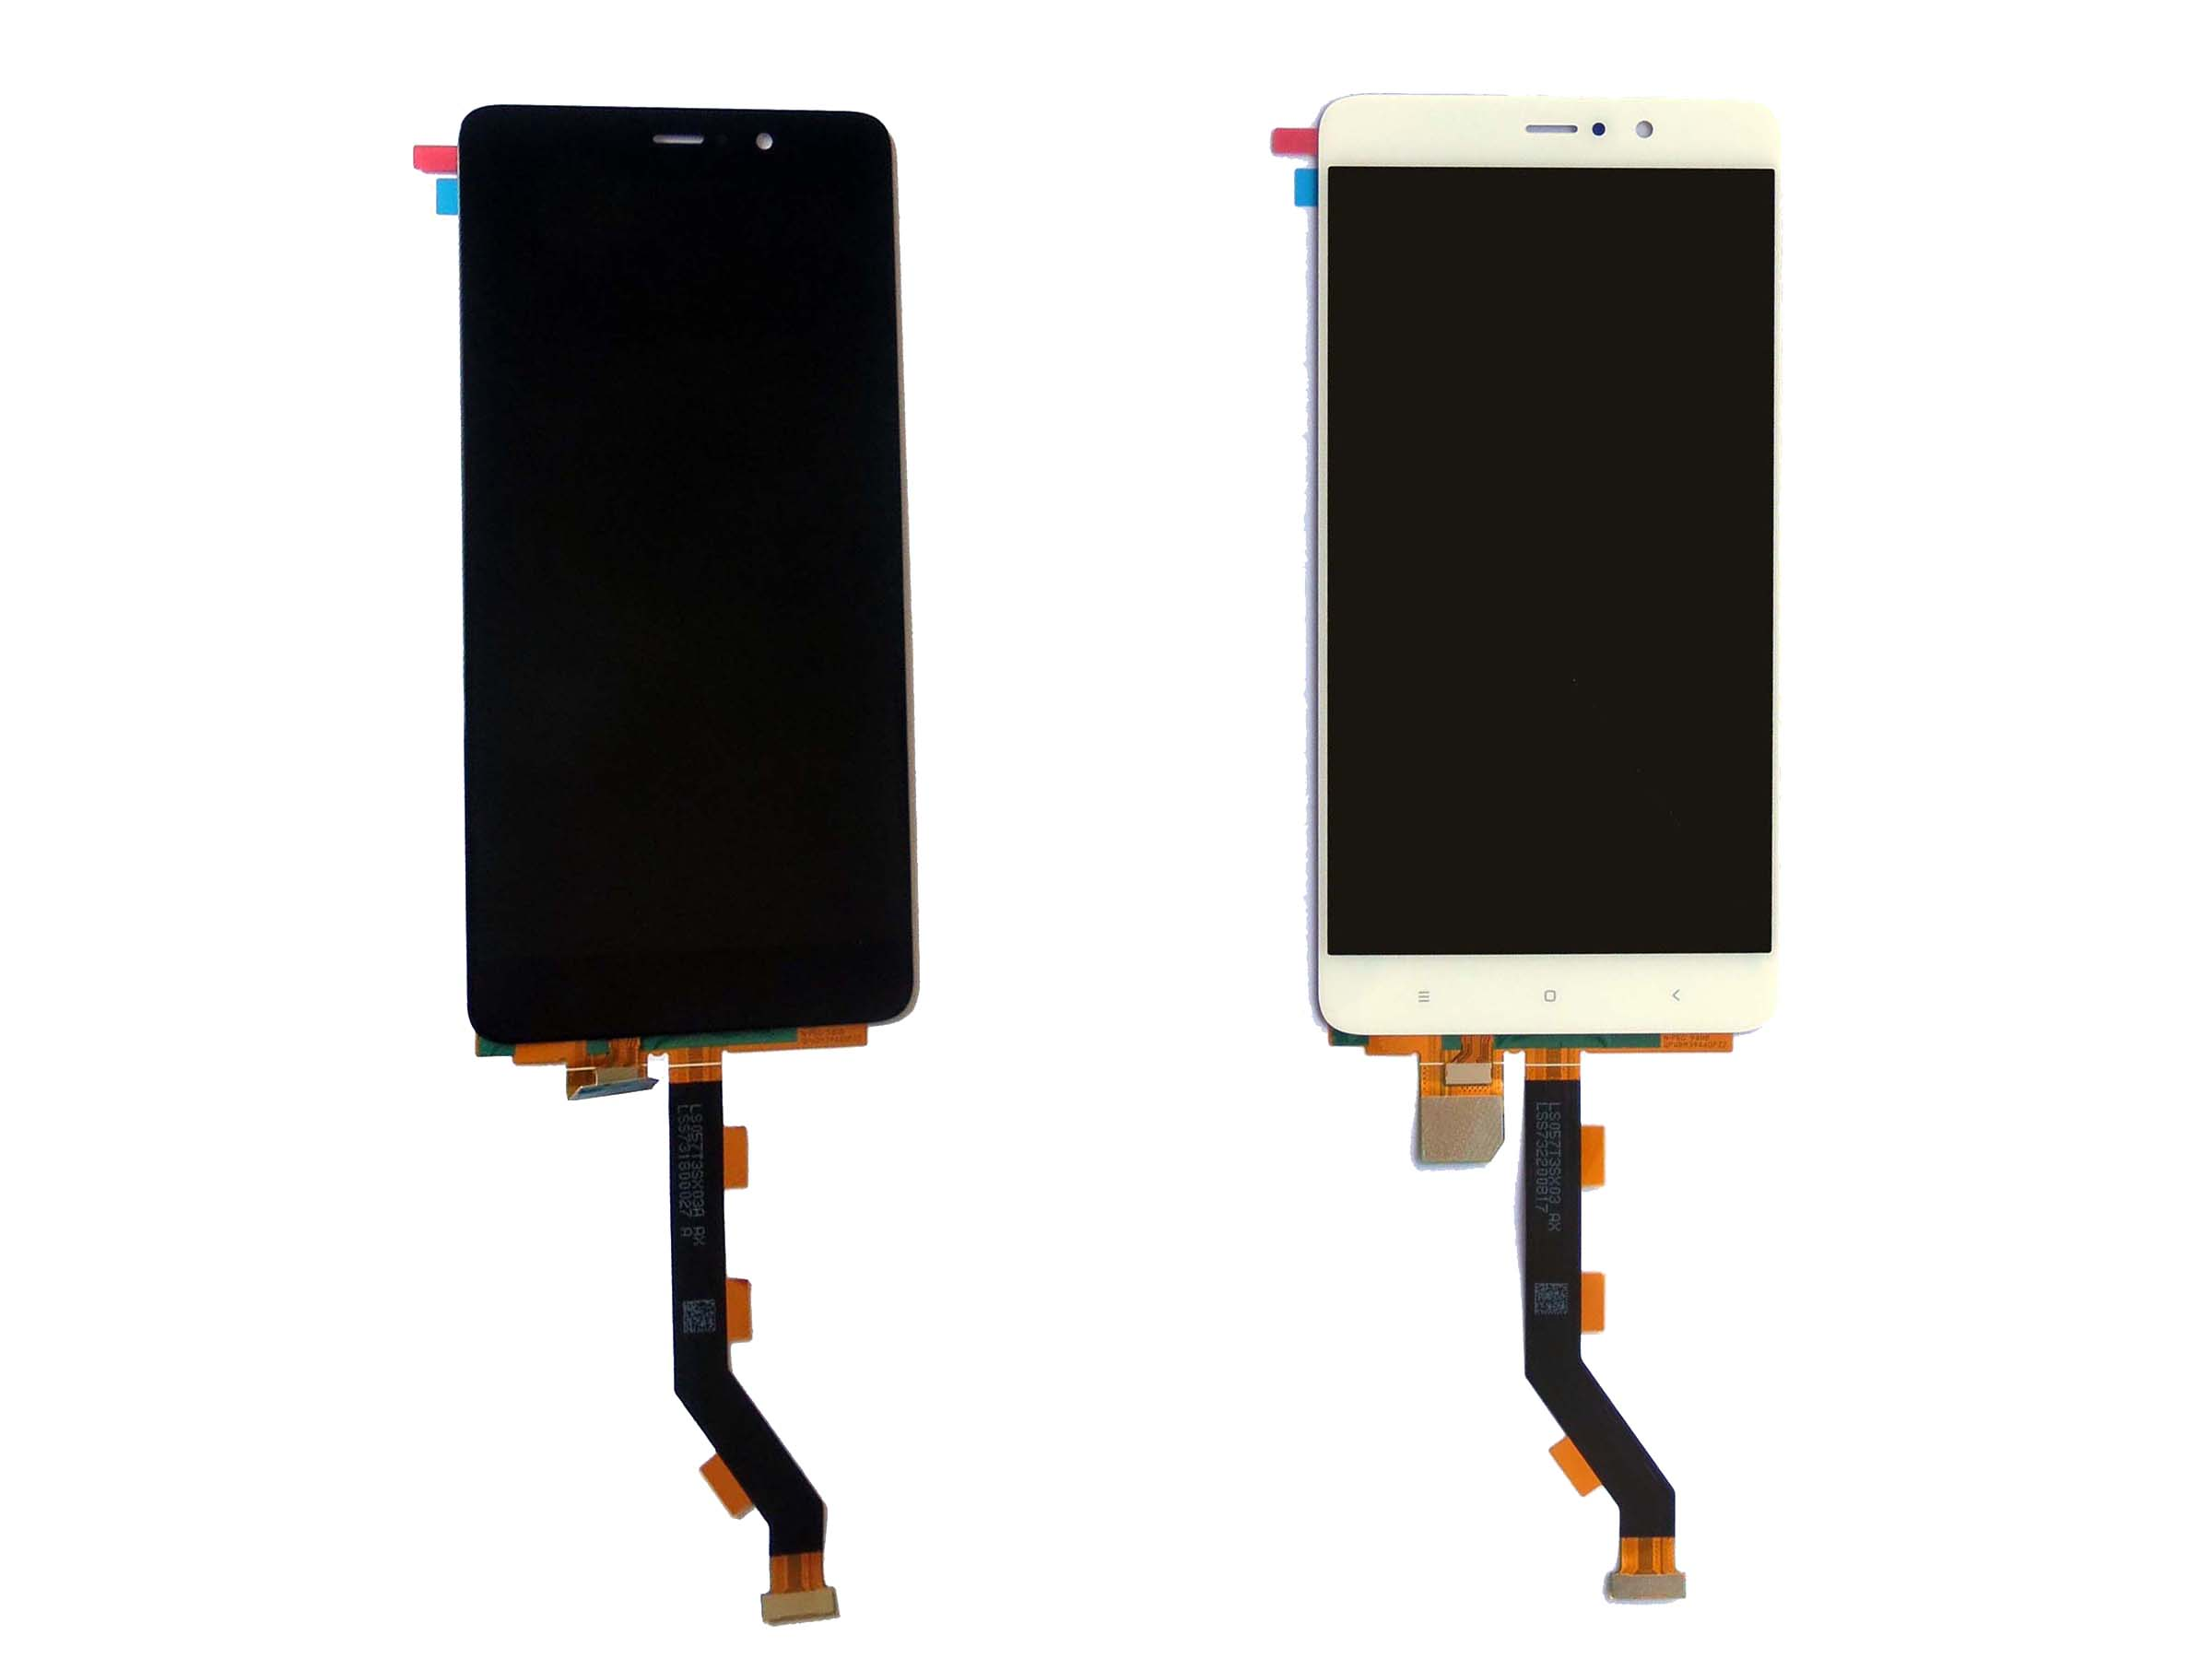 Original LCD Touch Screen Digitizer Assembly for Xiaomi 5s plus-Black & White